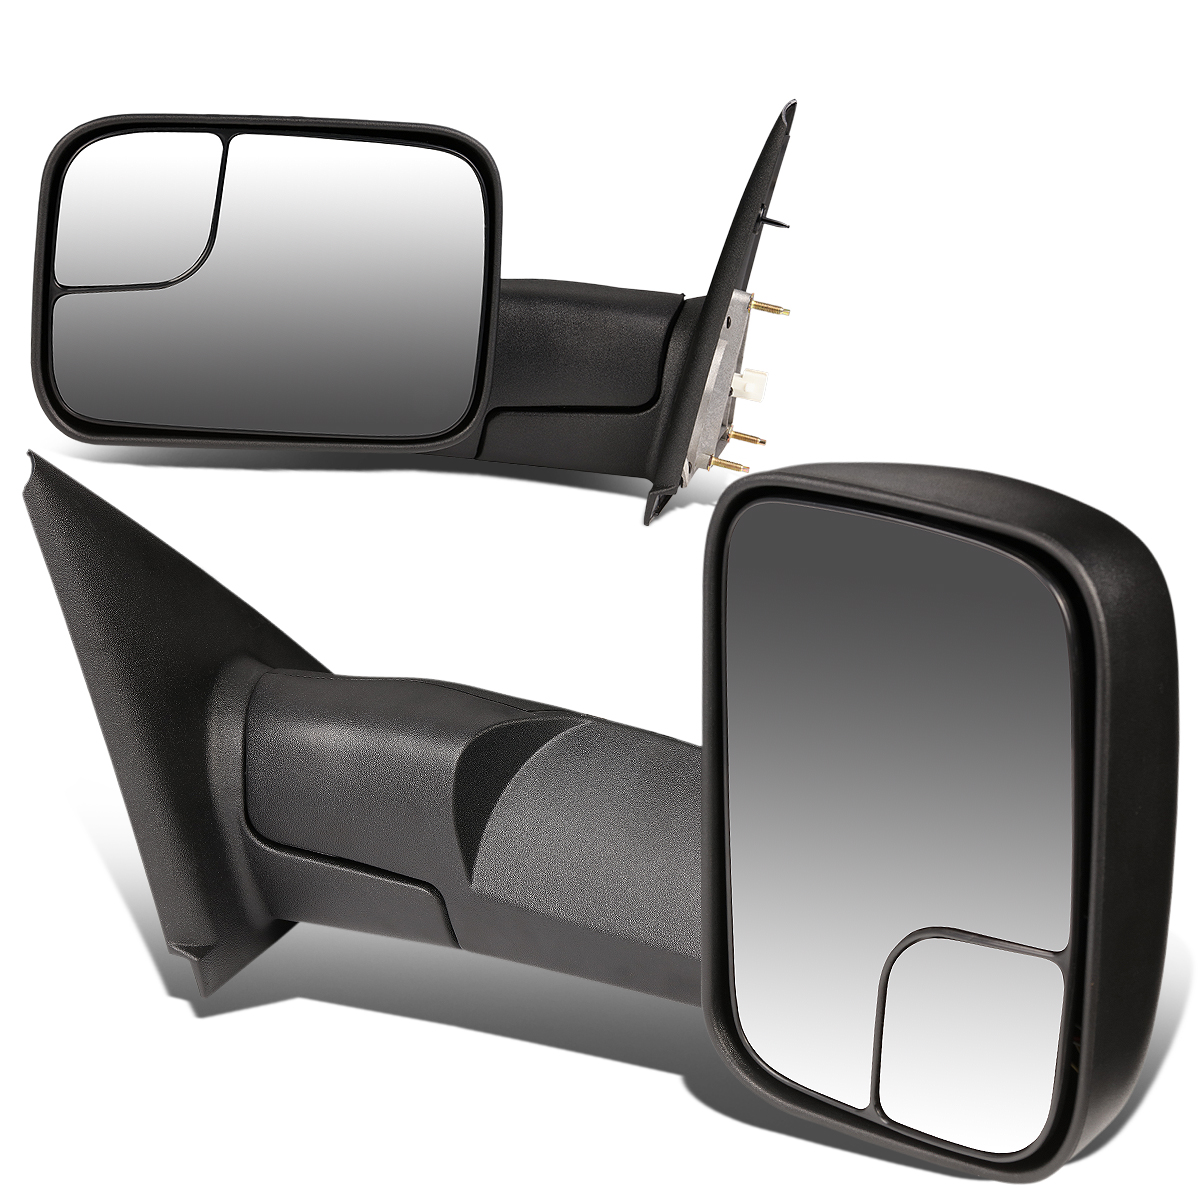 For 02-09 Ram 1500 / 2500 / 3500 Pair of Black Textured Telescoping Manual Foldable Side View Towing Mirror 05 06 07